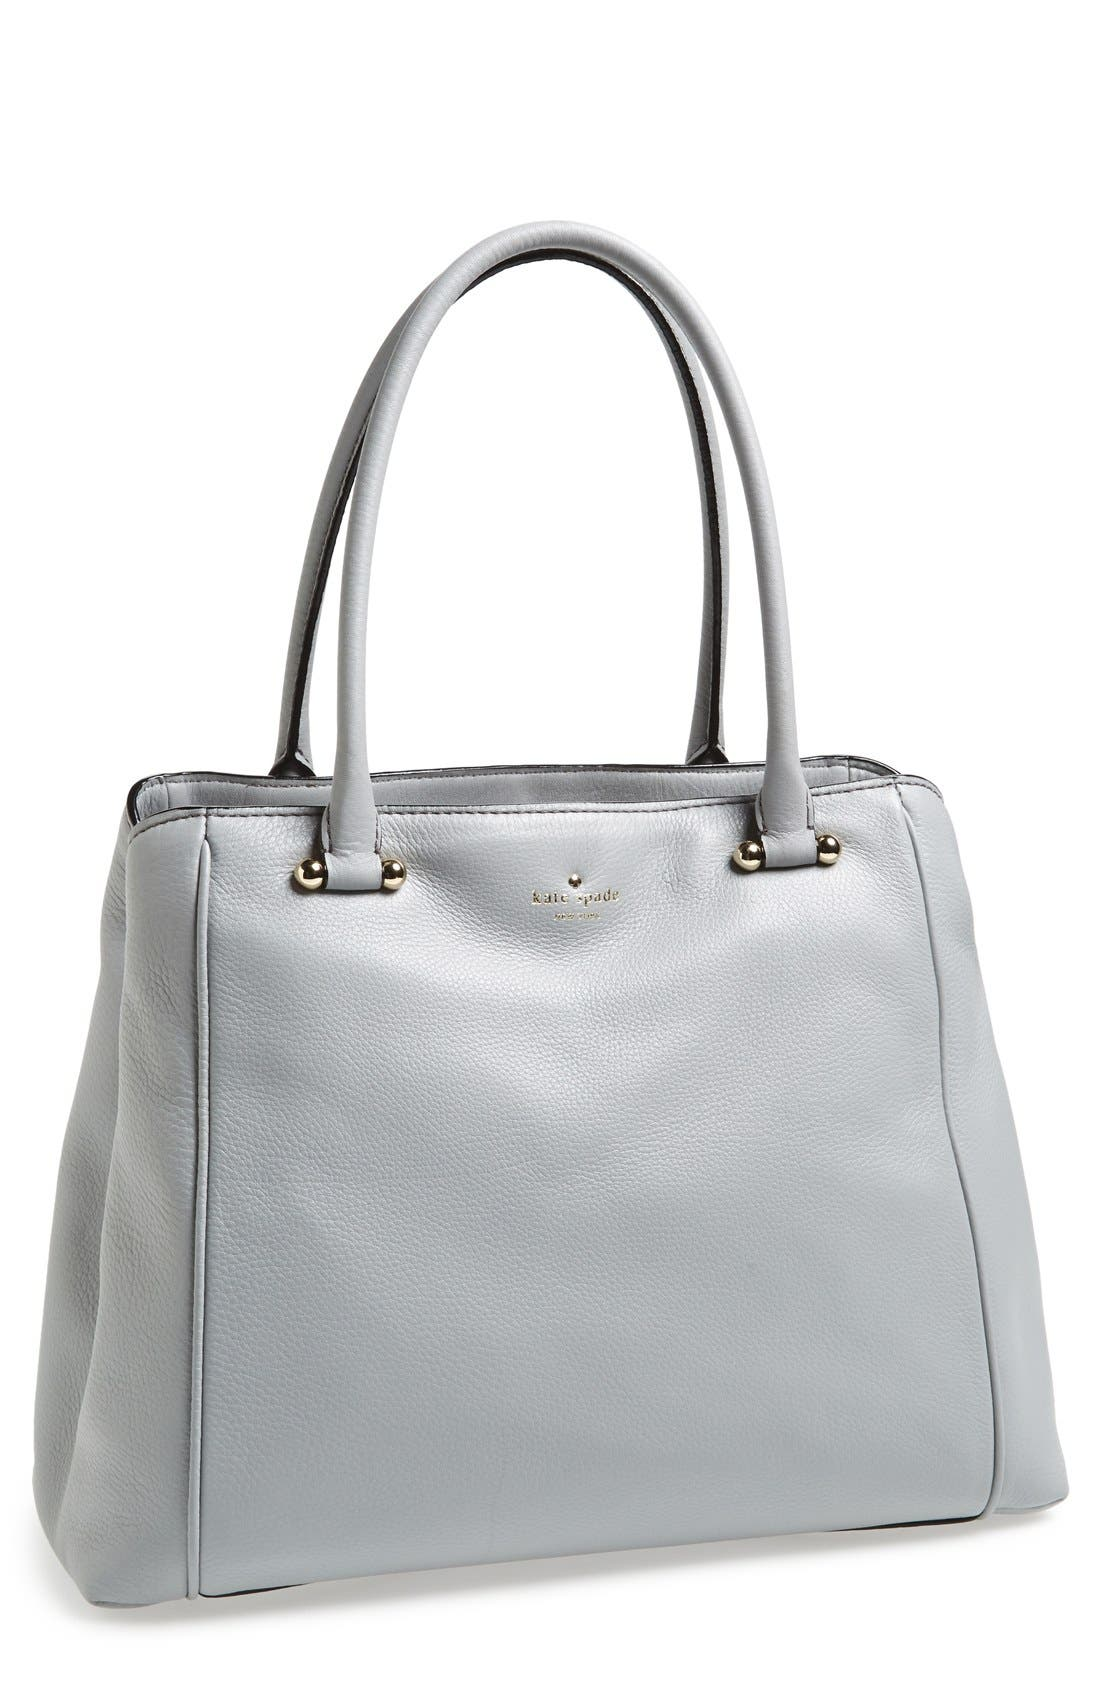 Alternate Image 1 Selected - kate spade new york 'reis' leather tote